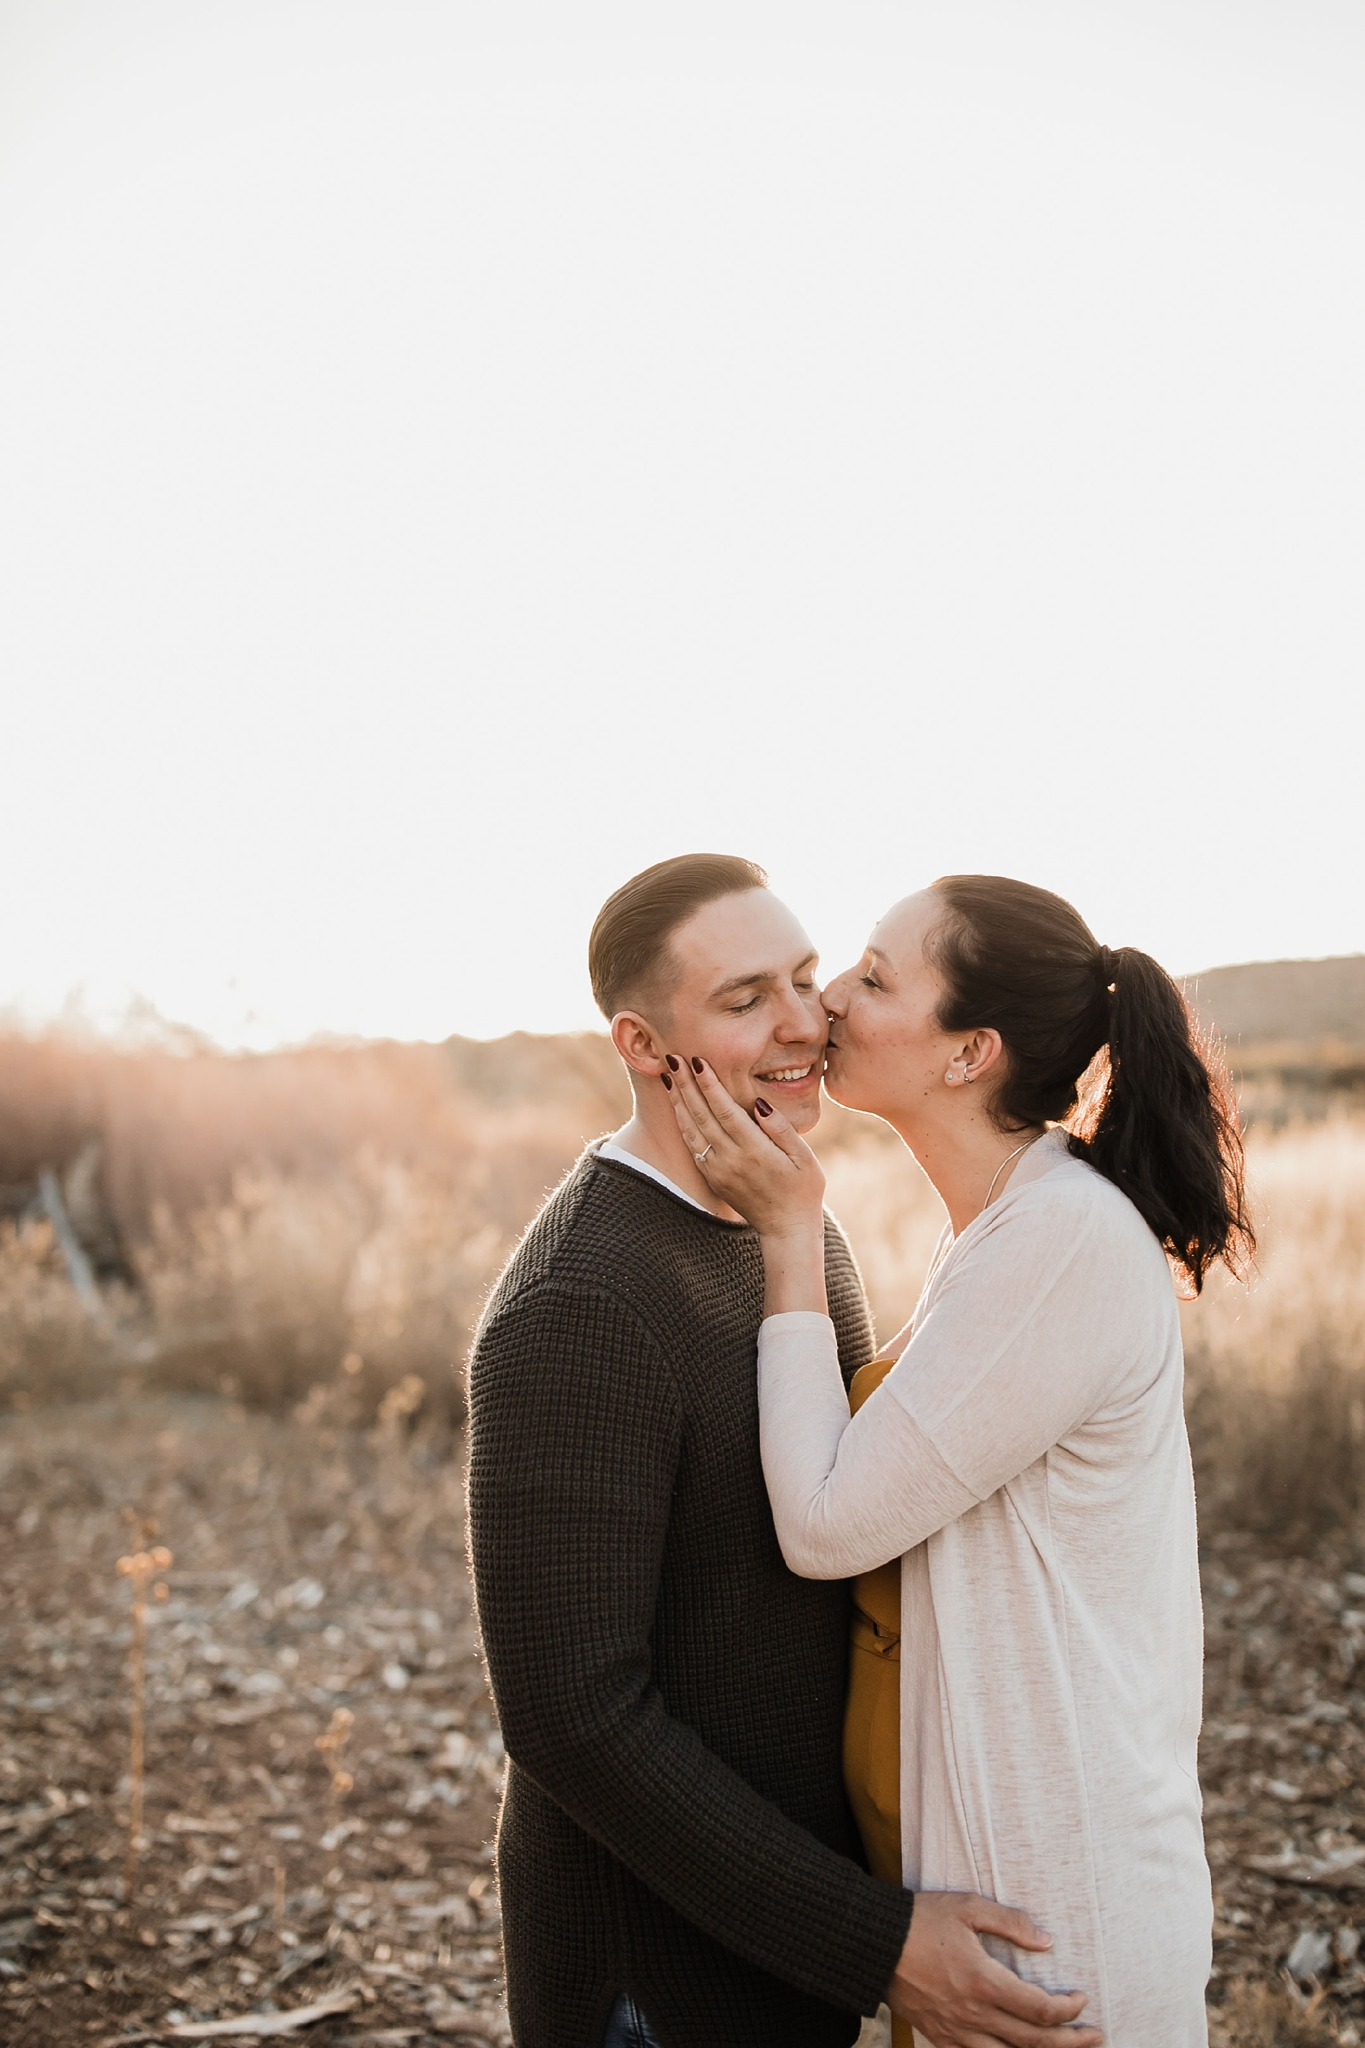 Alicia+lucia+photography+-+albuquerque+wedding+photographer+-+santa+fe+wedding+photography+-+new+mexico+wedding+photographer+-+new+mexico+wedding+-+engagement+-+new+mexico+engagemnt+-+outdoor+engagement_0005.jpg